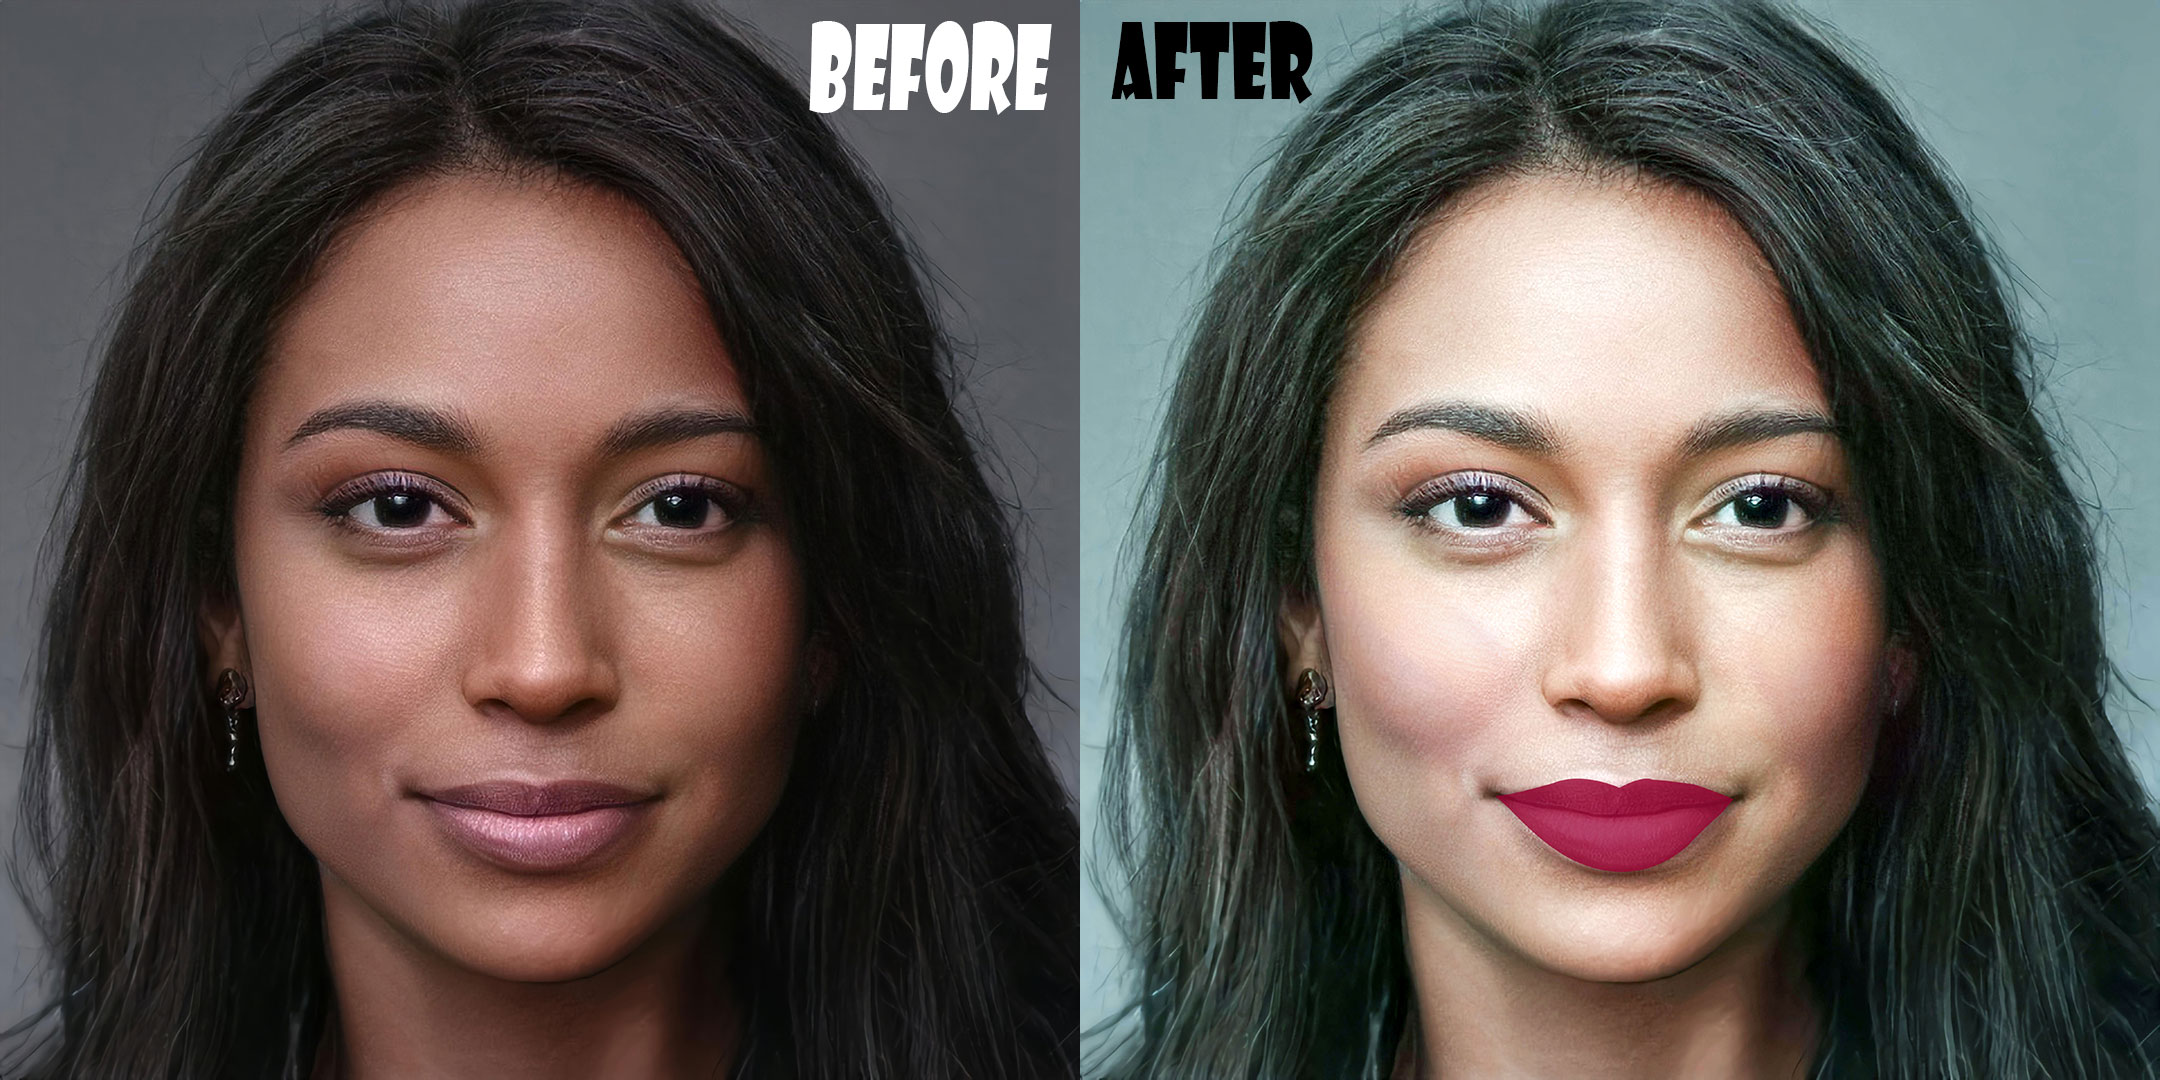 I will do edit photo retouching and color correction